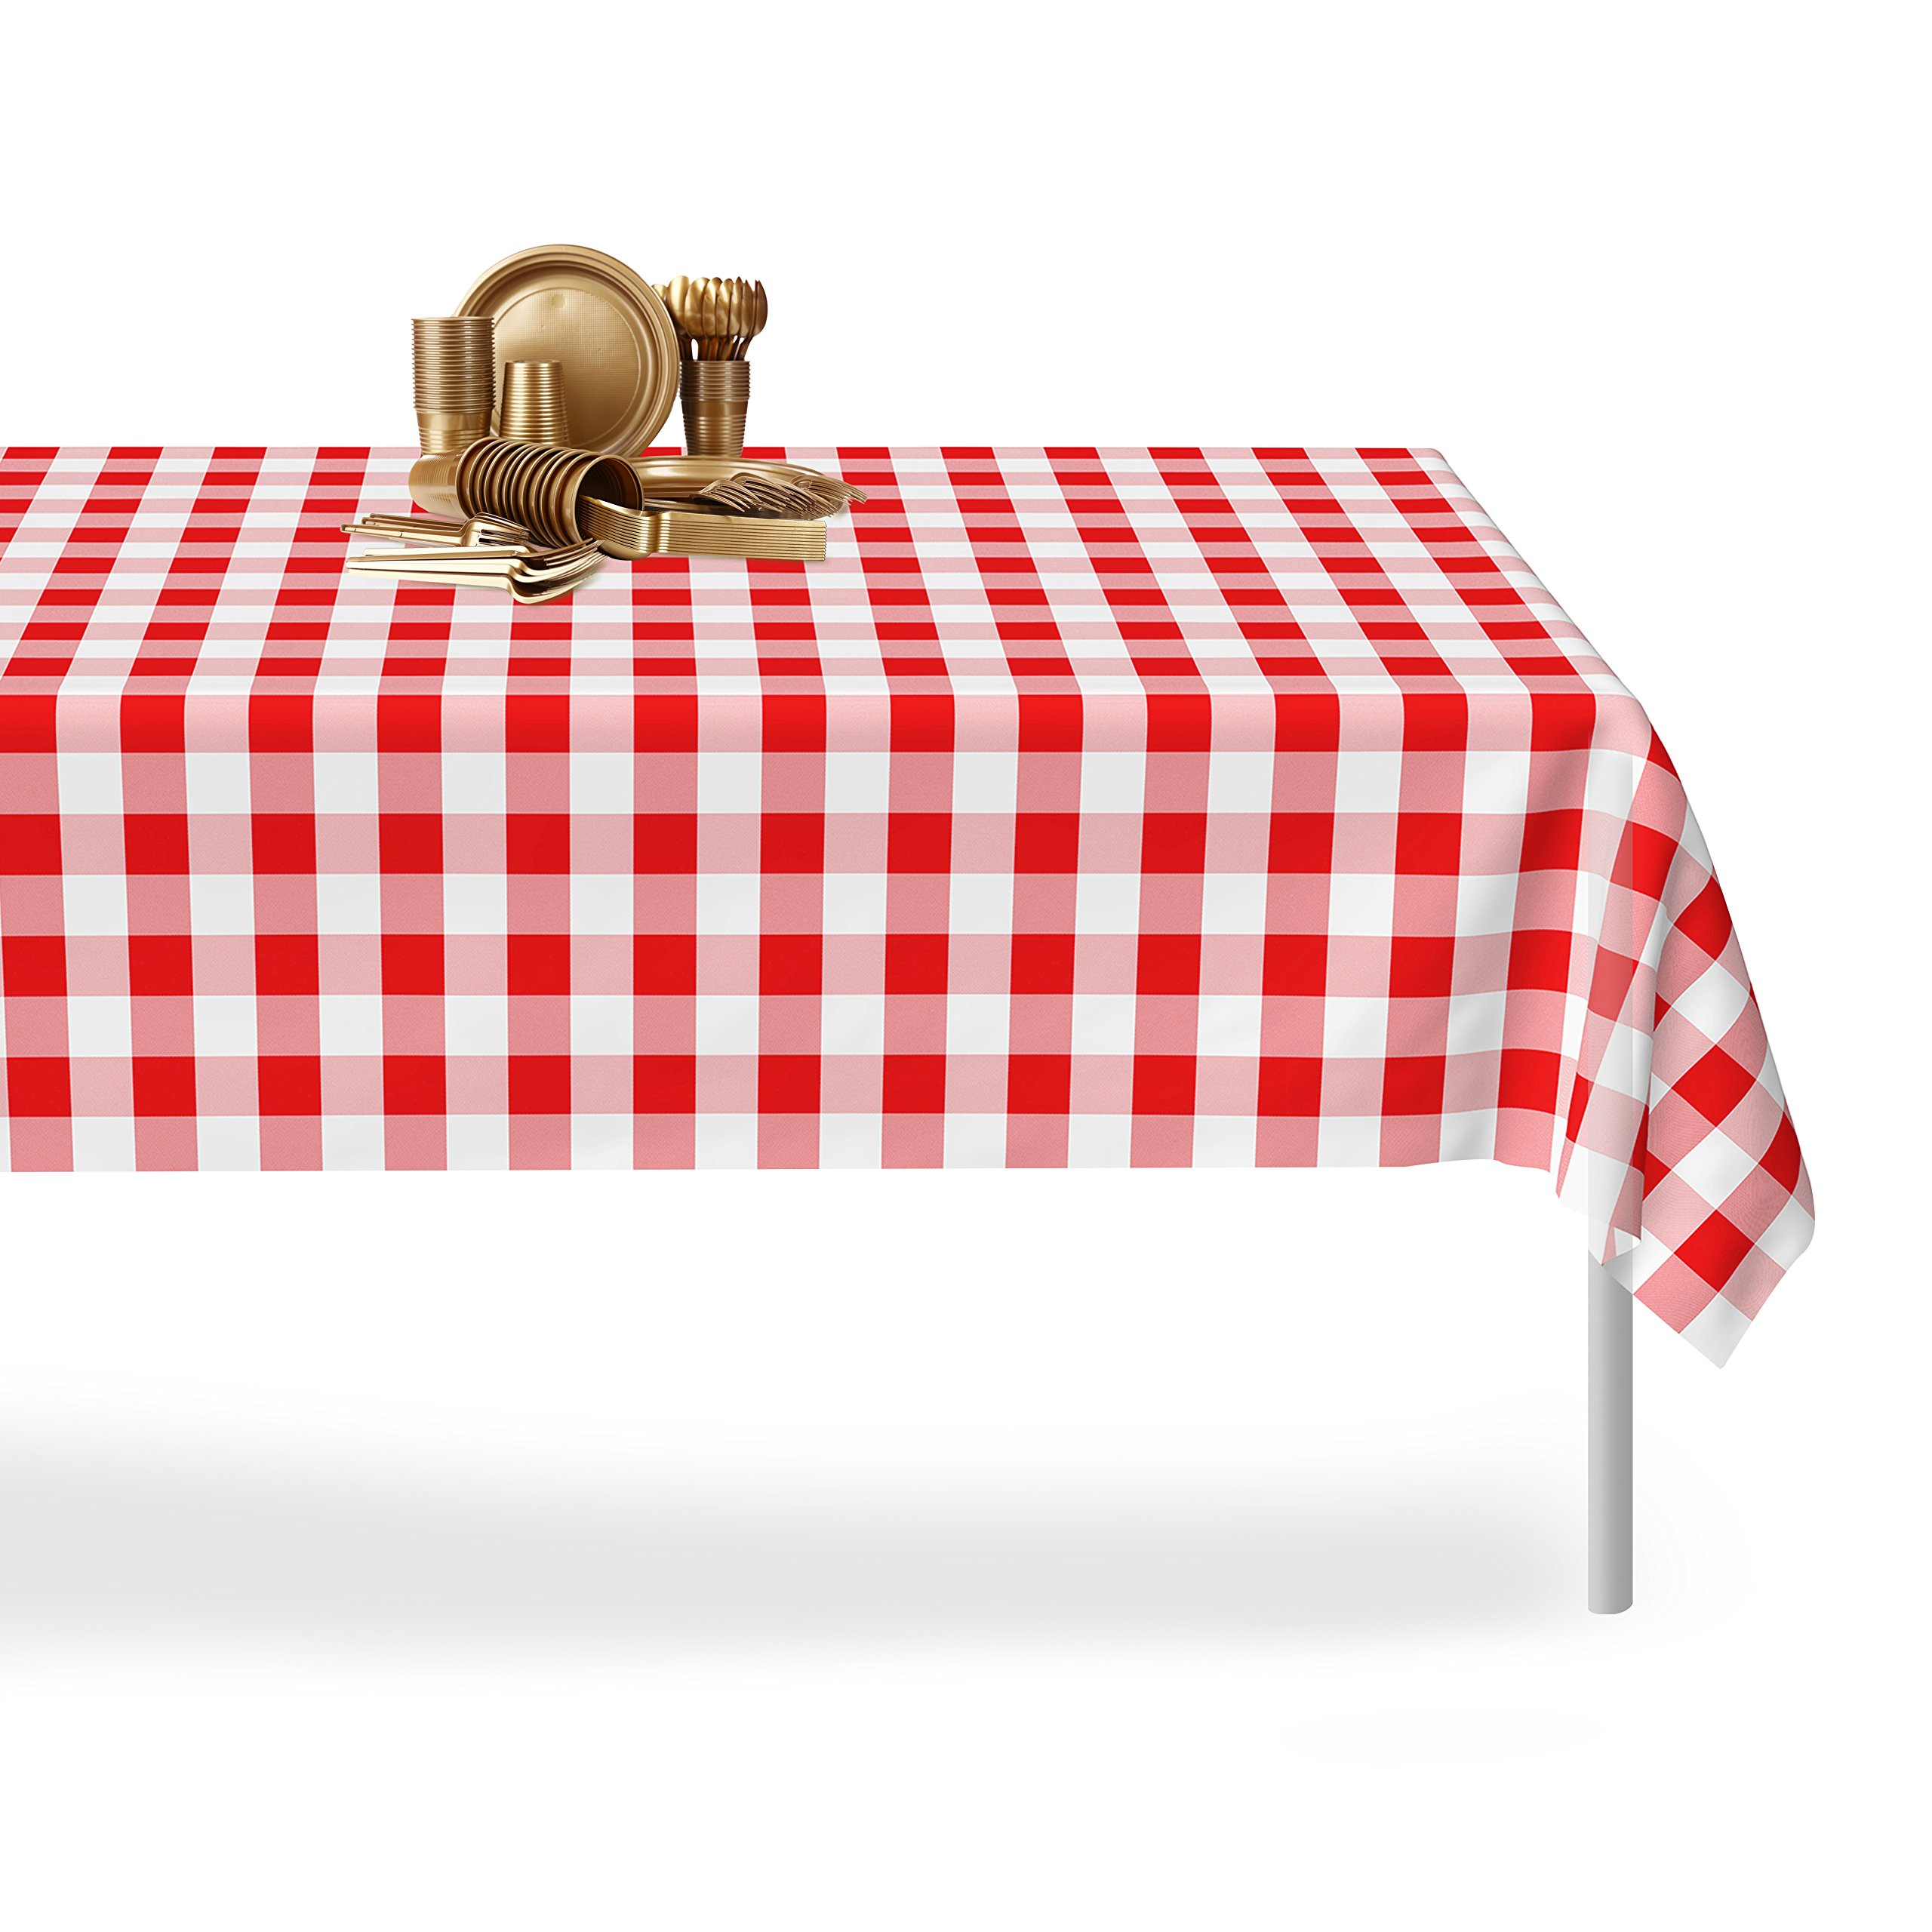 Red Gingham Checkered 12 Pack Premium Disposable Plastic Picnic Tablecloth 54 Inch. x 108 Inch. Rectangle Table Cover By Grandipity by Grandipity (Image #4)